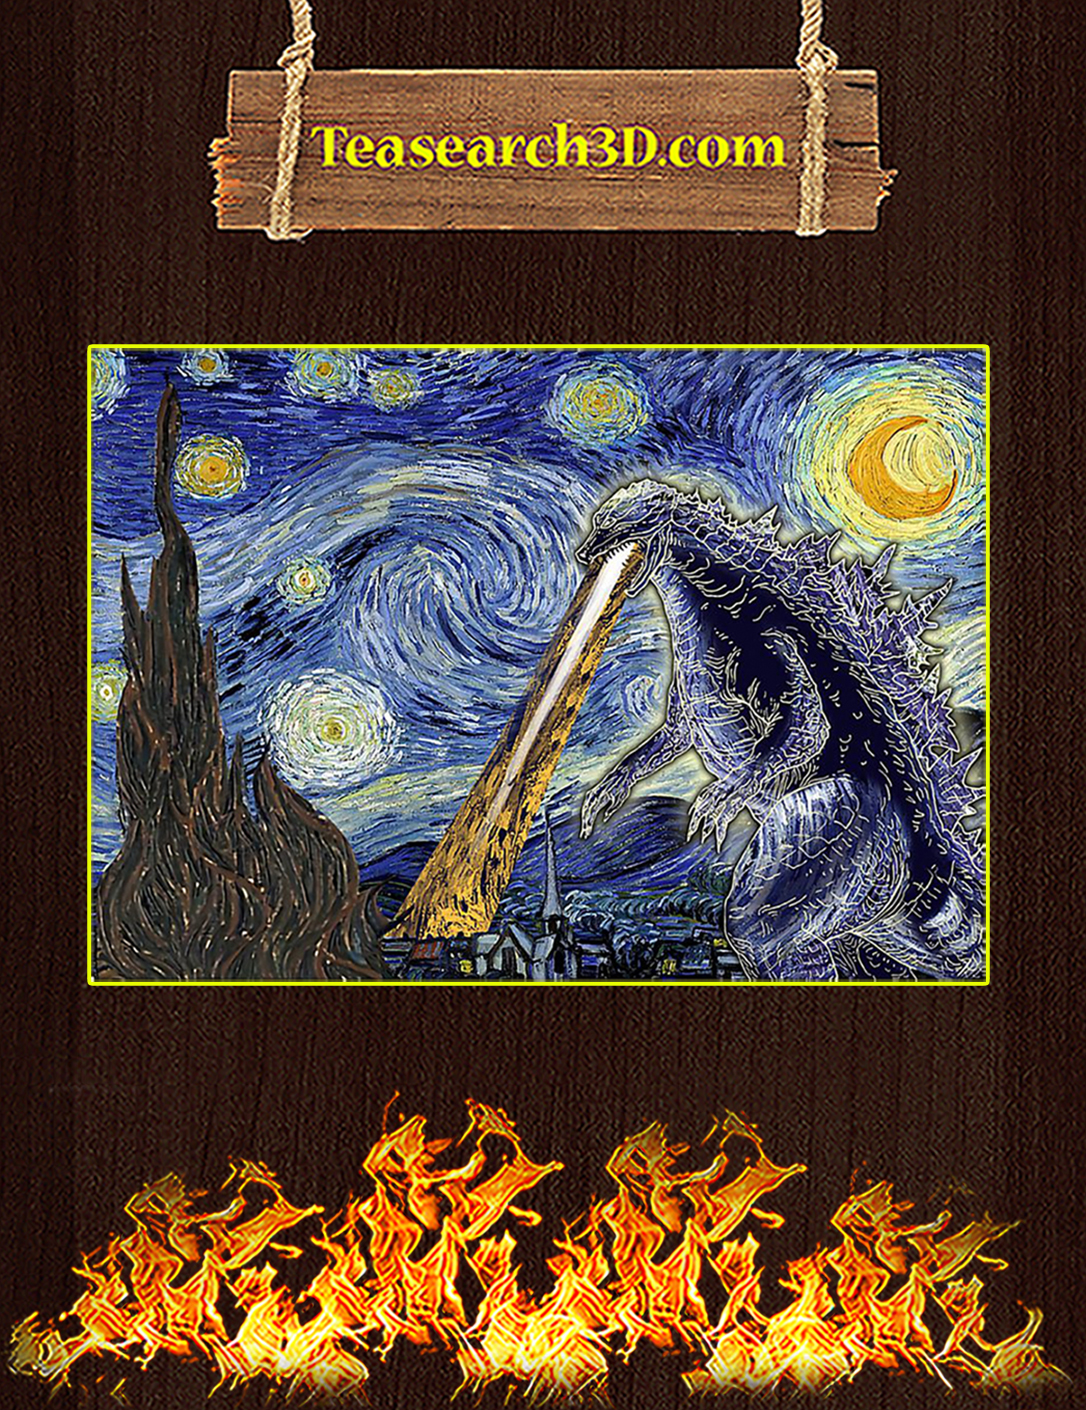 Starry night with godzilla poster A2